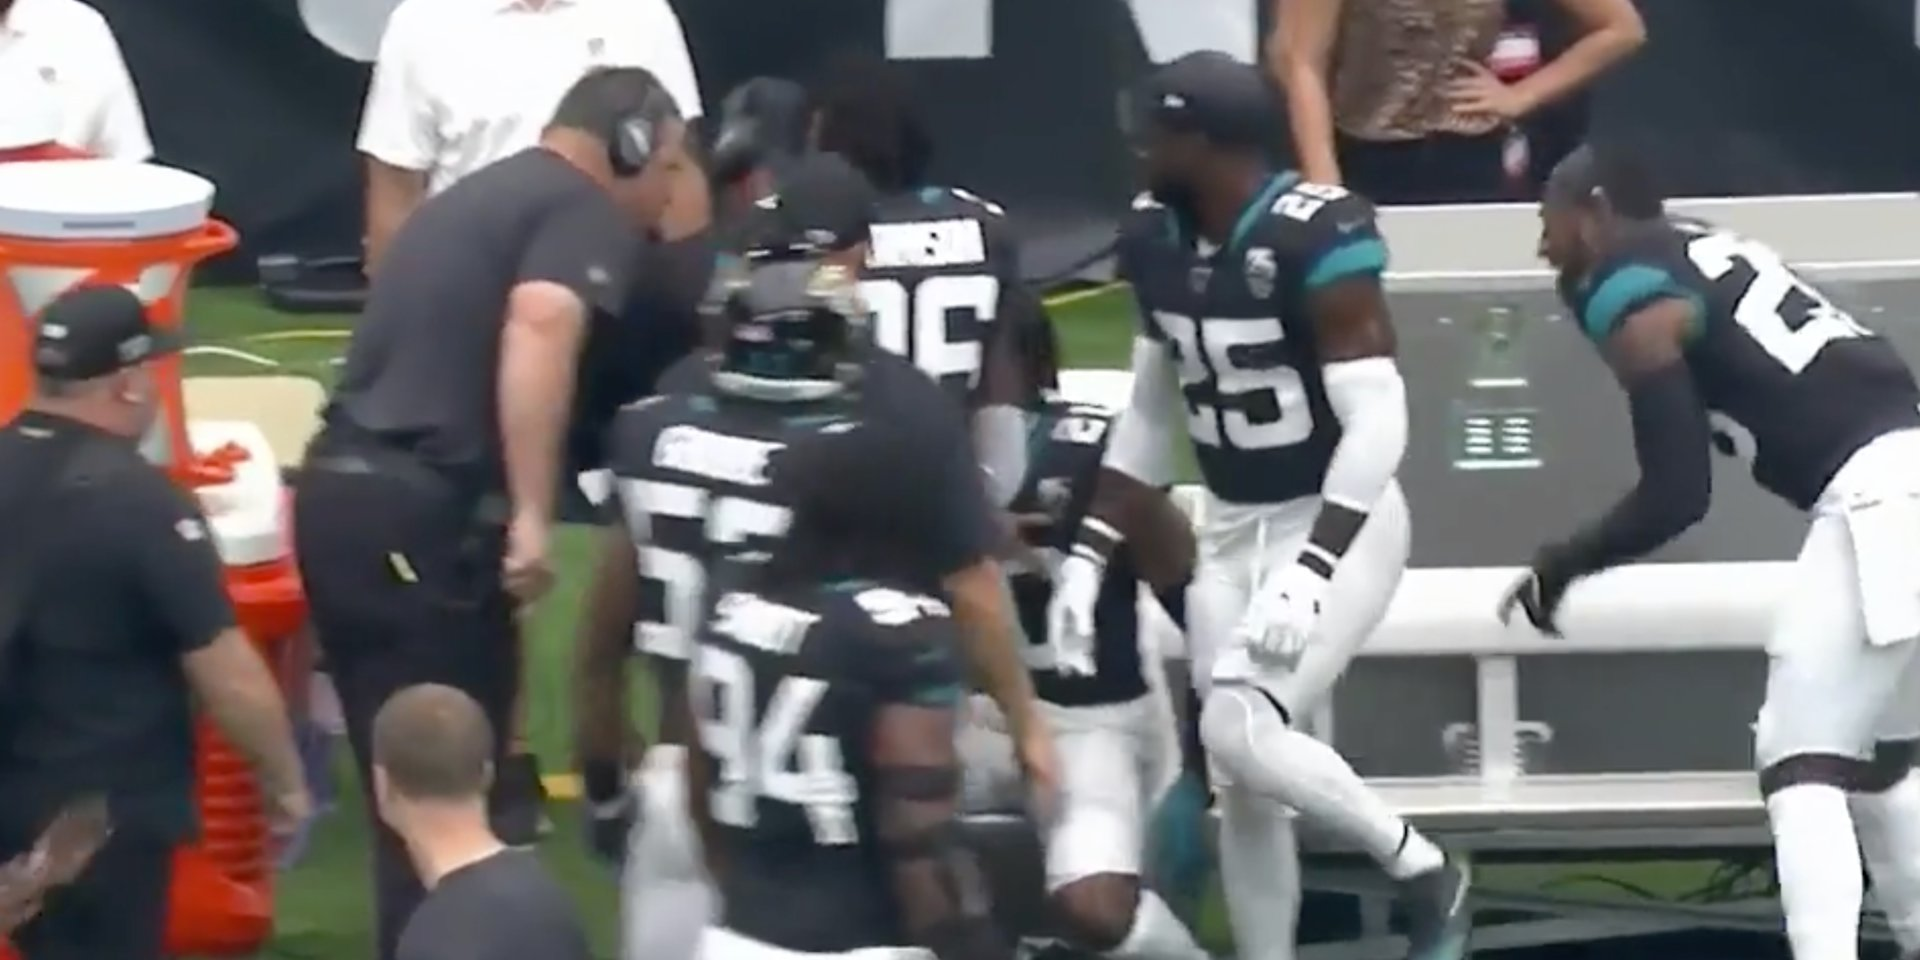 Jags star Jalen Ramsey and head coach Doug Marrone get into shouting match and had to be separated on sideline